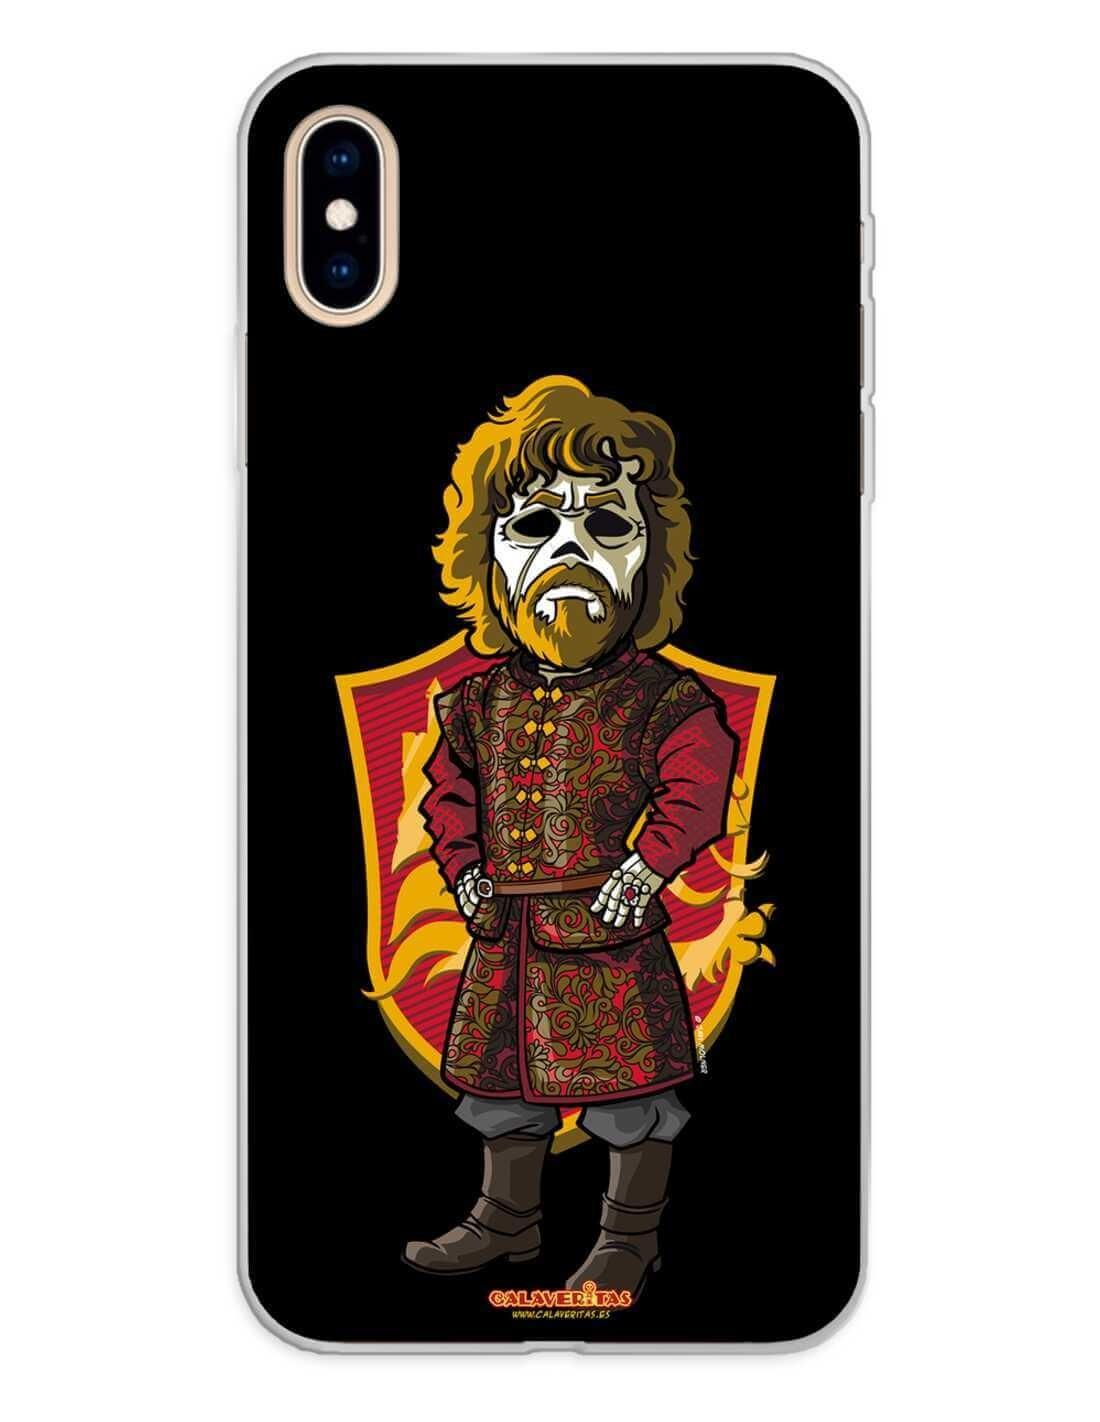 Apple iPhone XS Max Funda Silicona Calaveritas The King